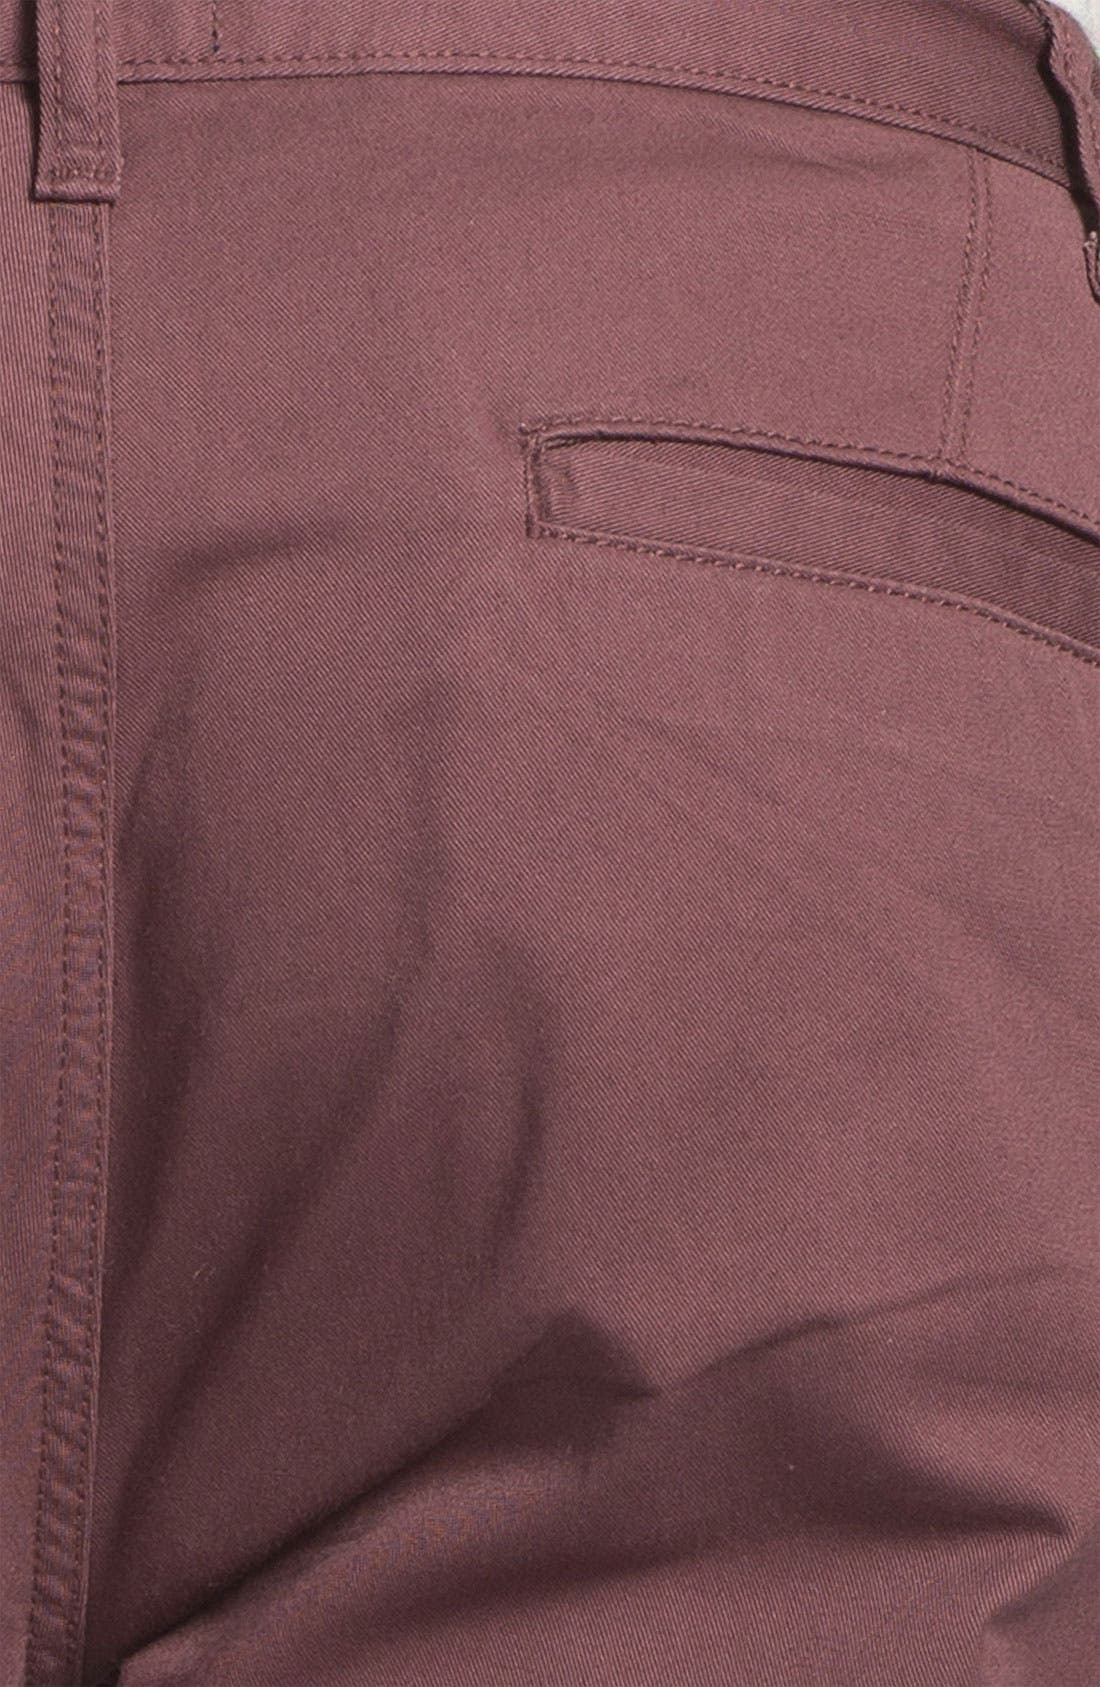 Slim Fit Chinos,                             Alternate thumbnail 2, color,                             930